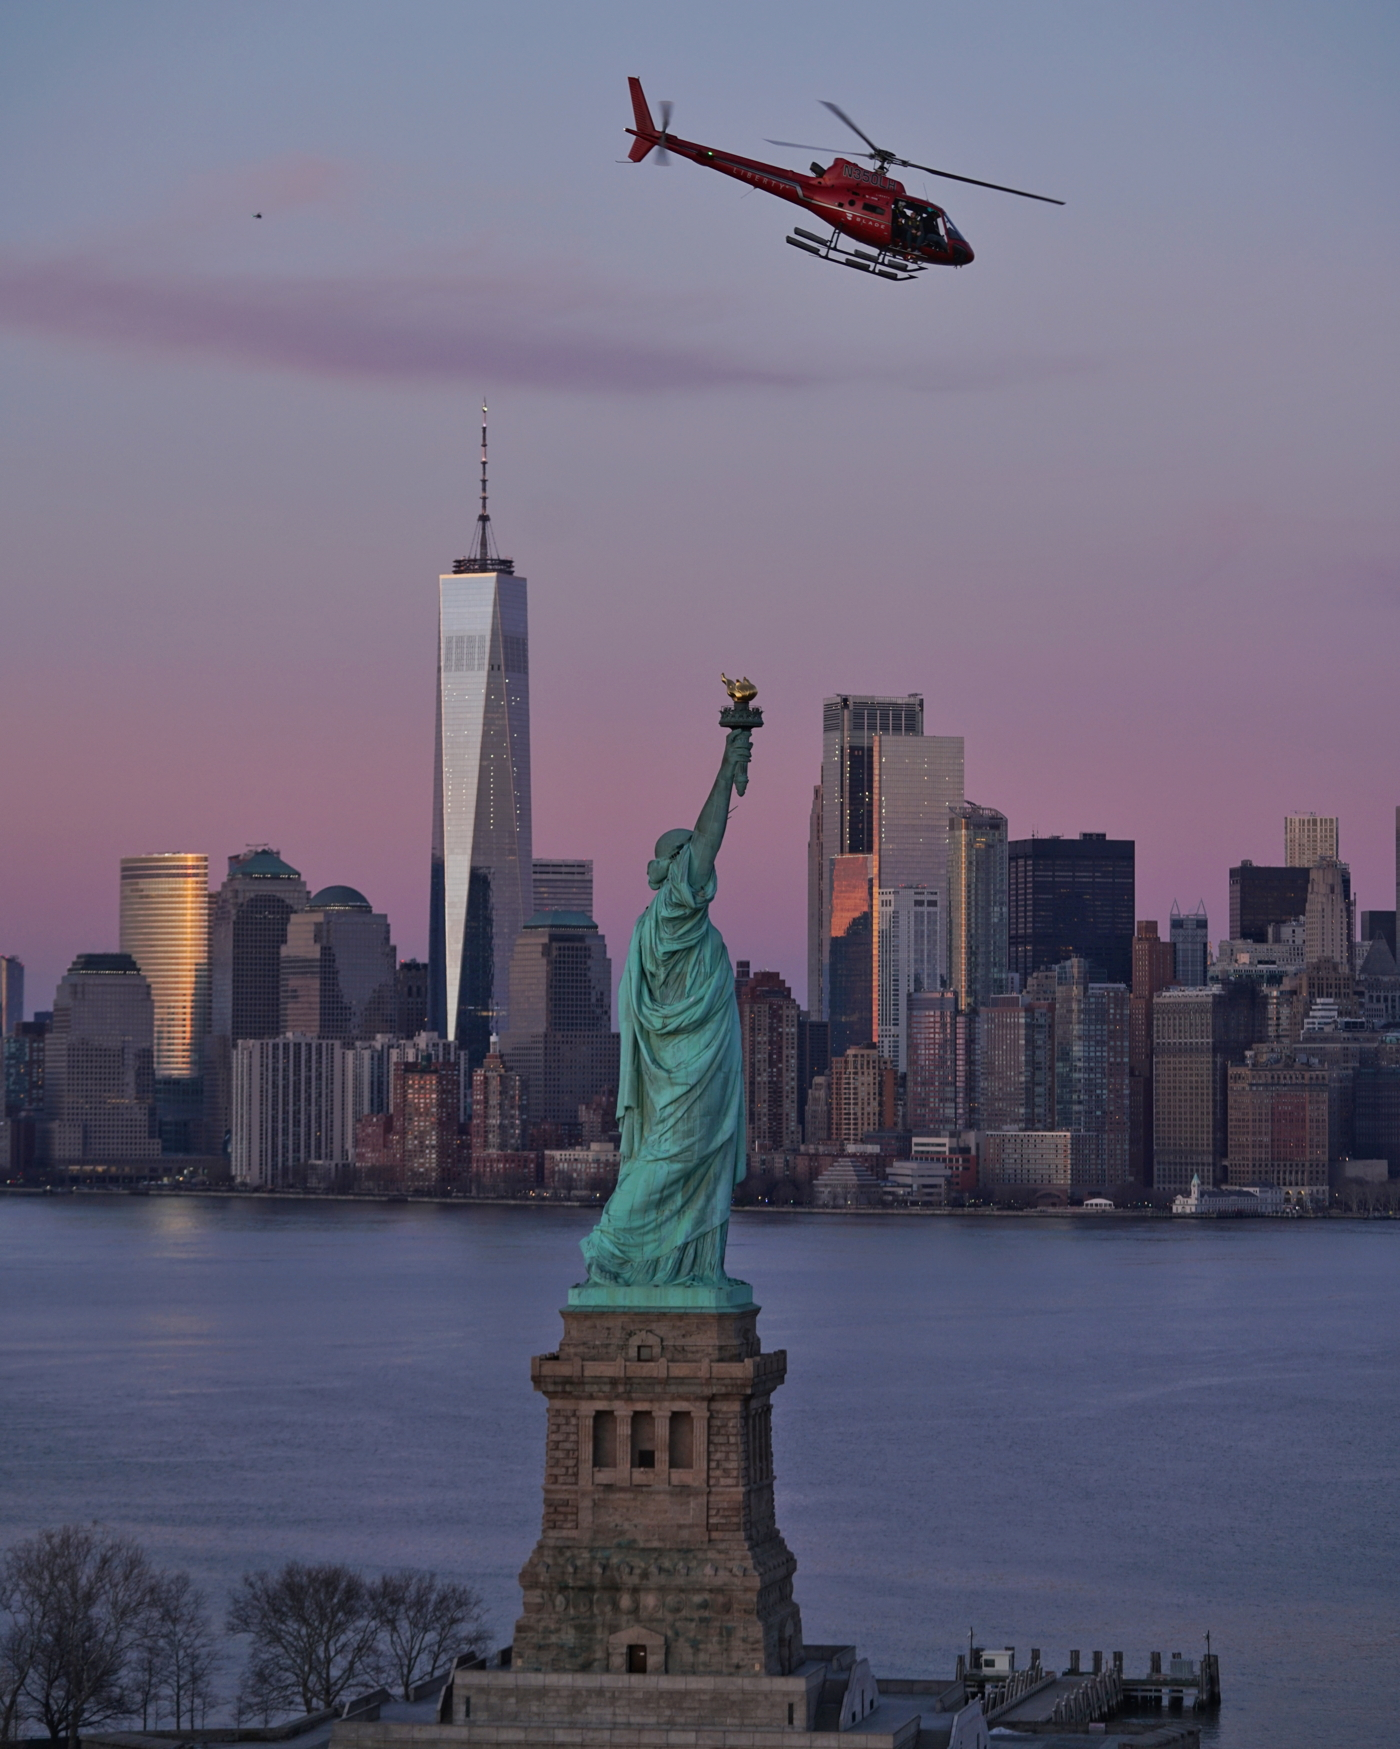 FlyNYON helicopter with Statue of Liberty